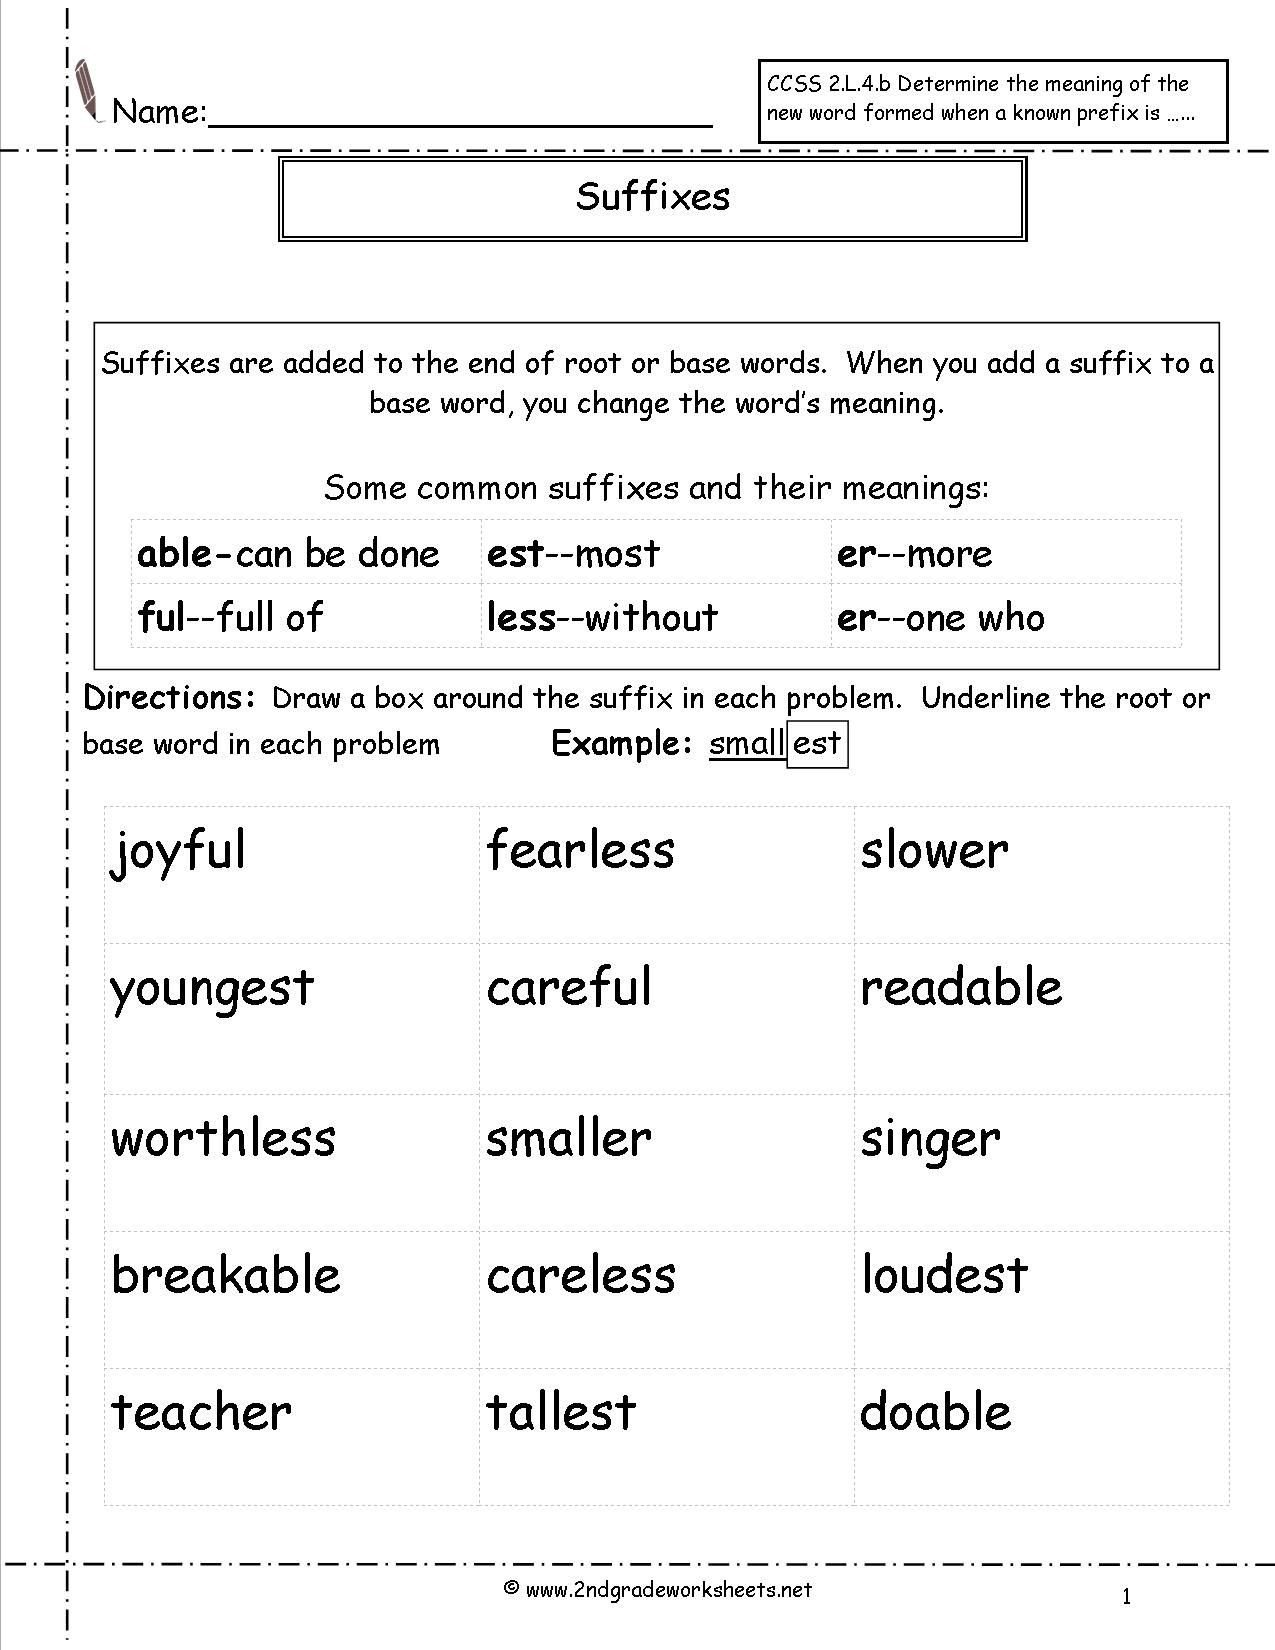 Suffixes Worksheets for 2nd Grade 41 Innovative Prefix Worksheets for You